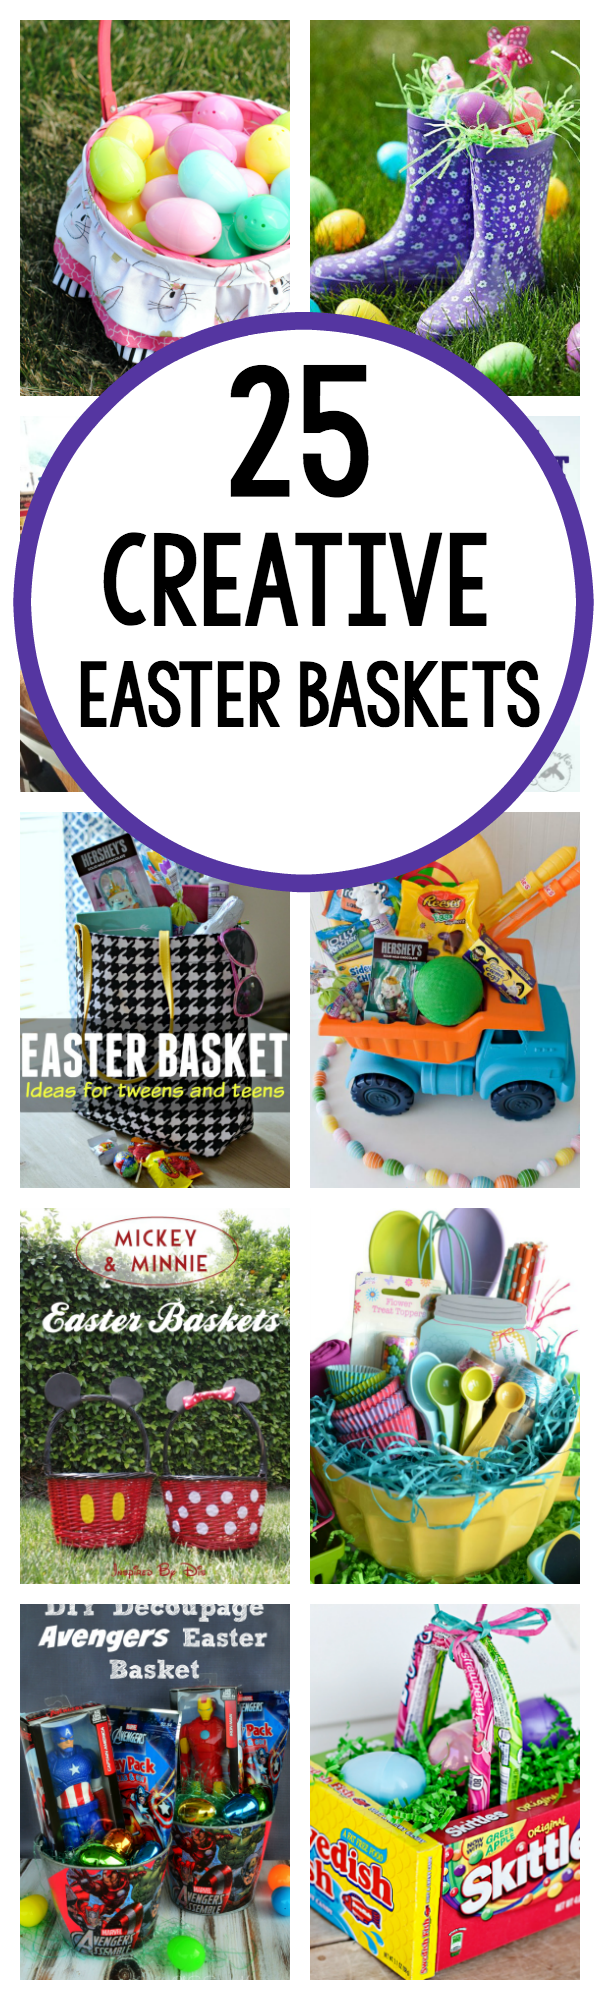 25 great easter basket ideas crazy little projects 25 creative easter basket ideas negle Choice Image